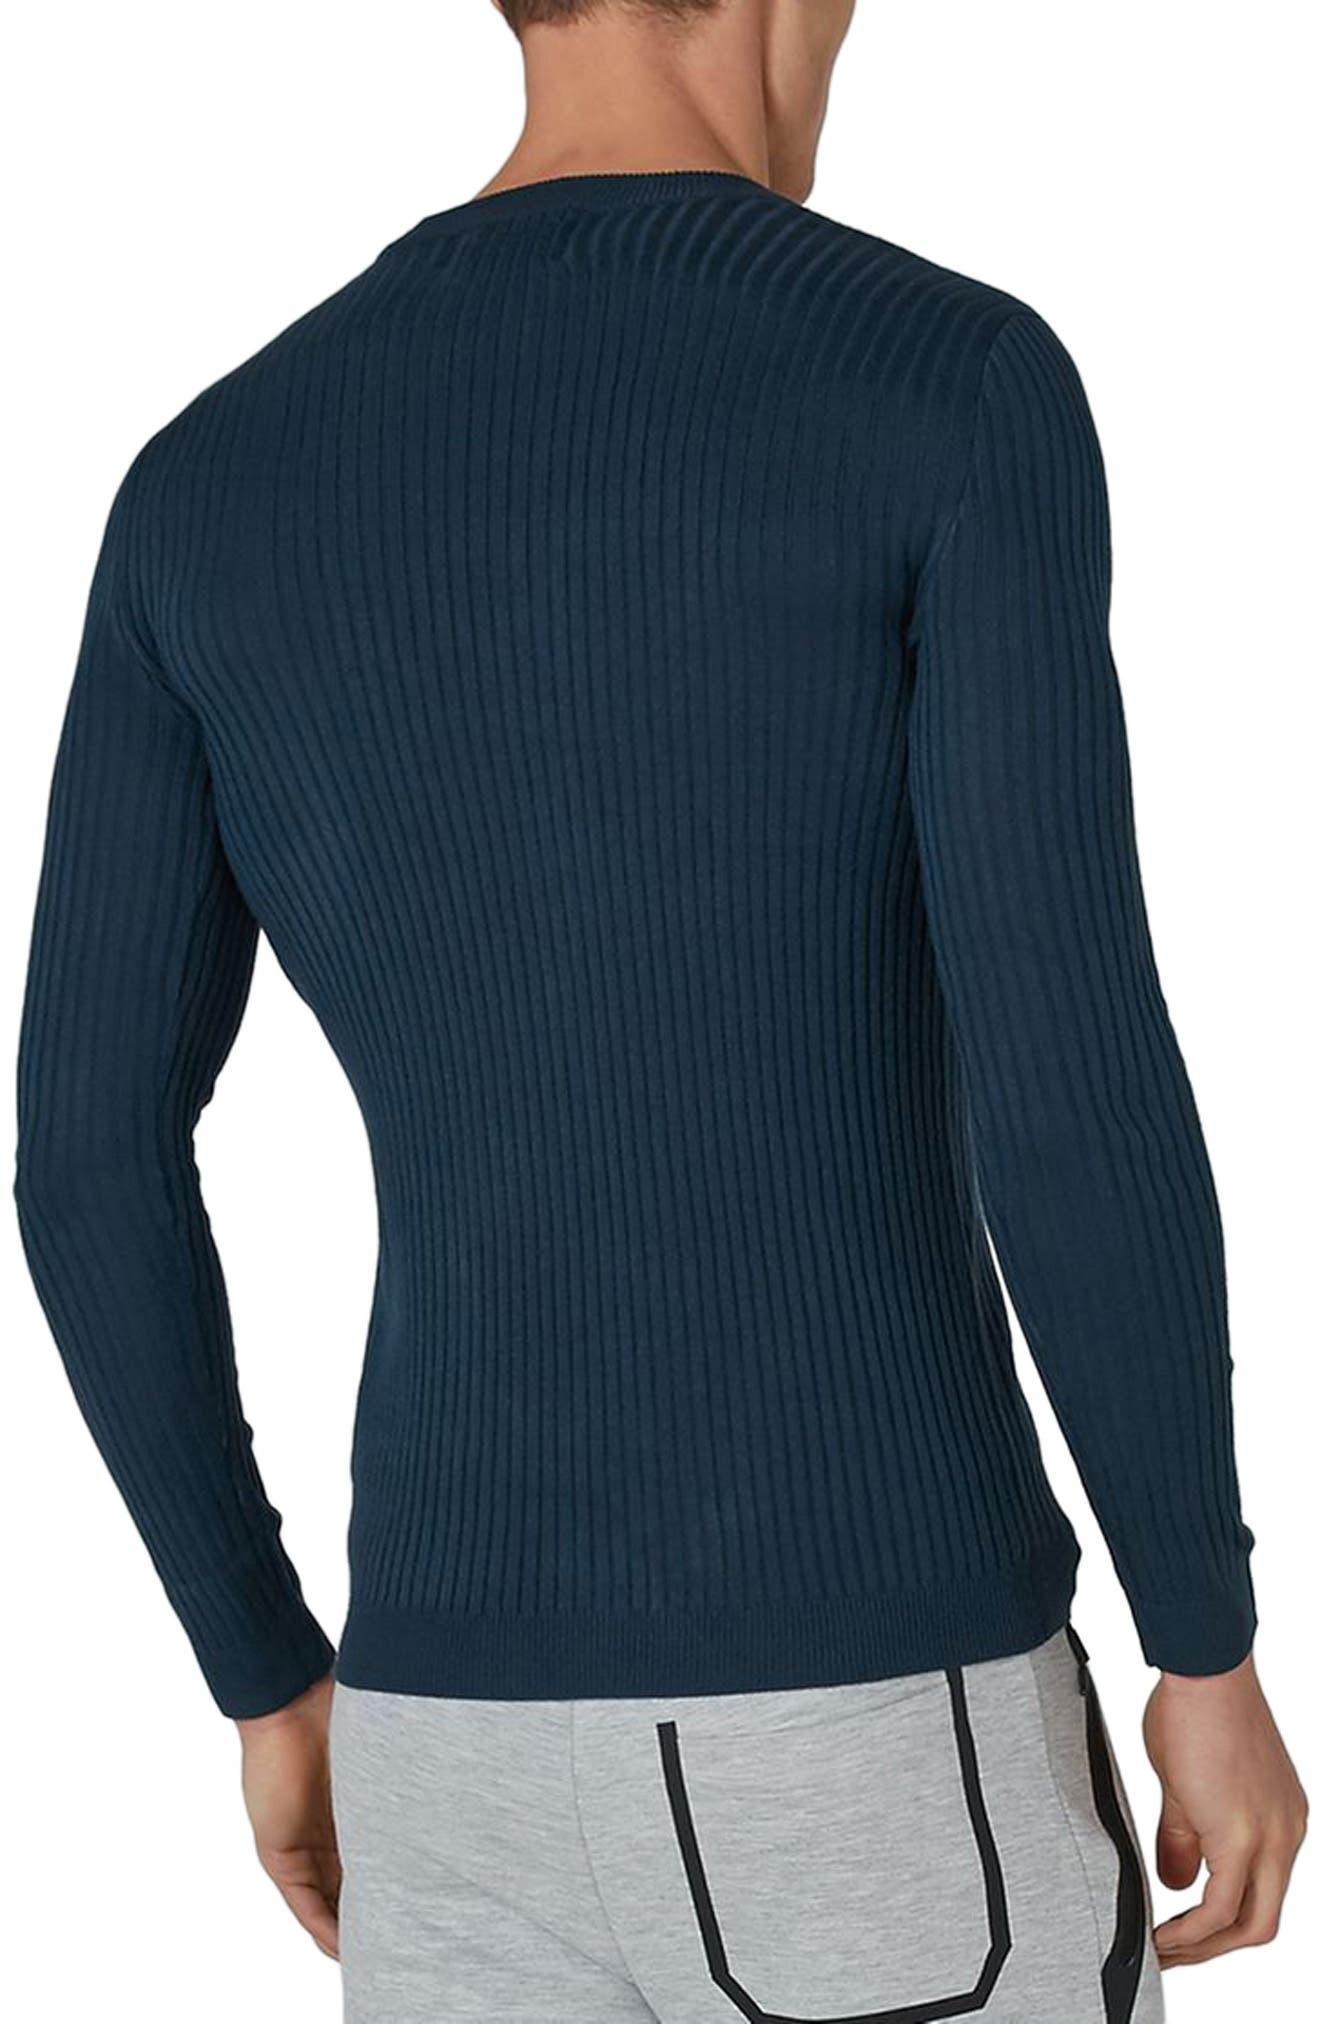 Alternate Image 2  - Topman Ribbed Muscle Fit Sweater